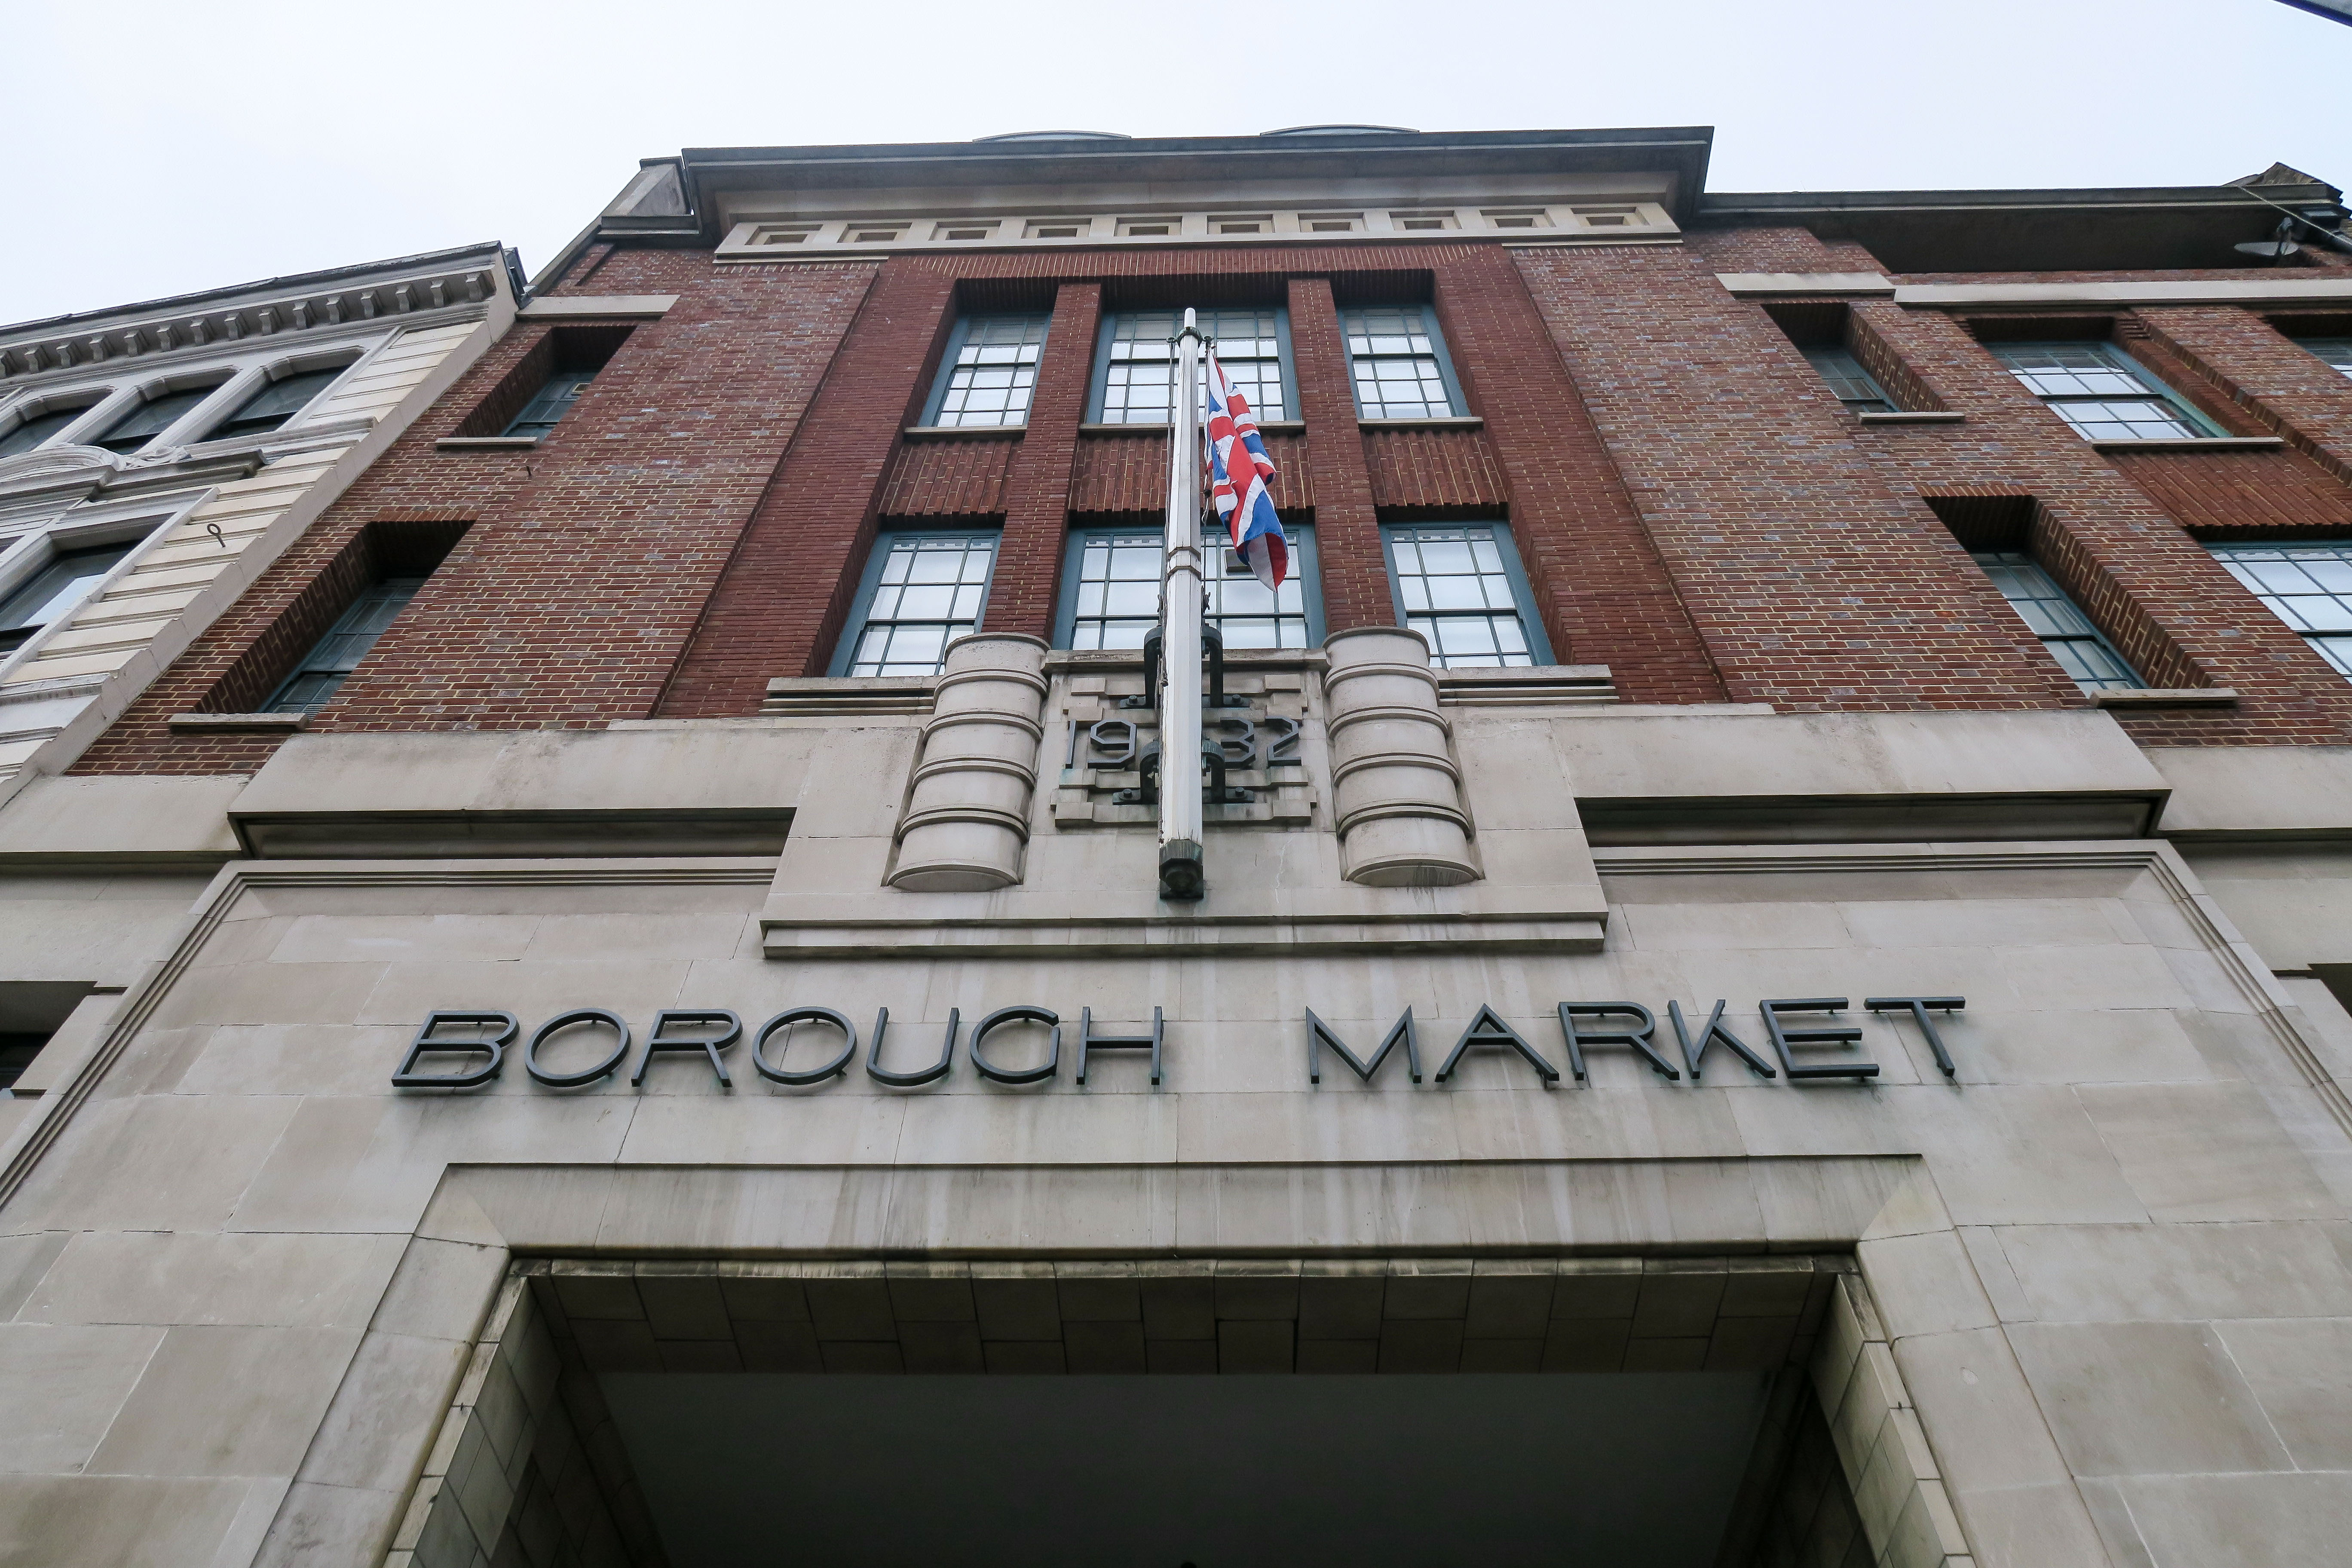 How to spend 1 hour in Borough Market, London. Travel diary & blog by Rosie Andre (food, foodie, market, stall, food porn, visit, tourist, uk, england, iconic, famous, londoner, local, landmark, shop, shopping, guide, to do, where to see, photo, photography, photograph, blogger)